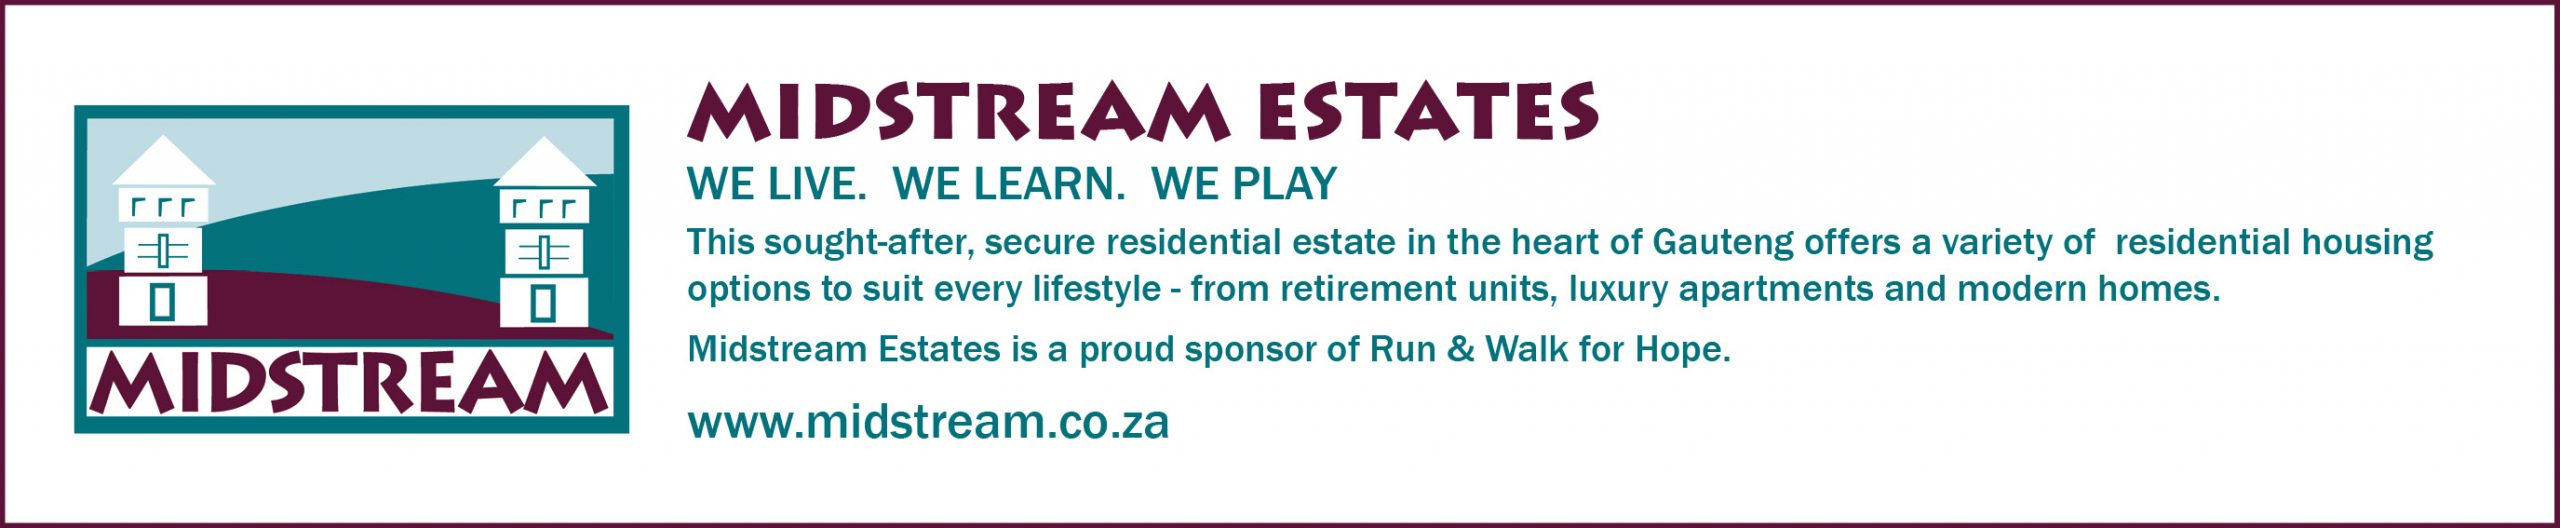 Midstream-banner-scaled Legends Marathon: Run for a Cause. R1million prize purse News